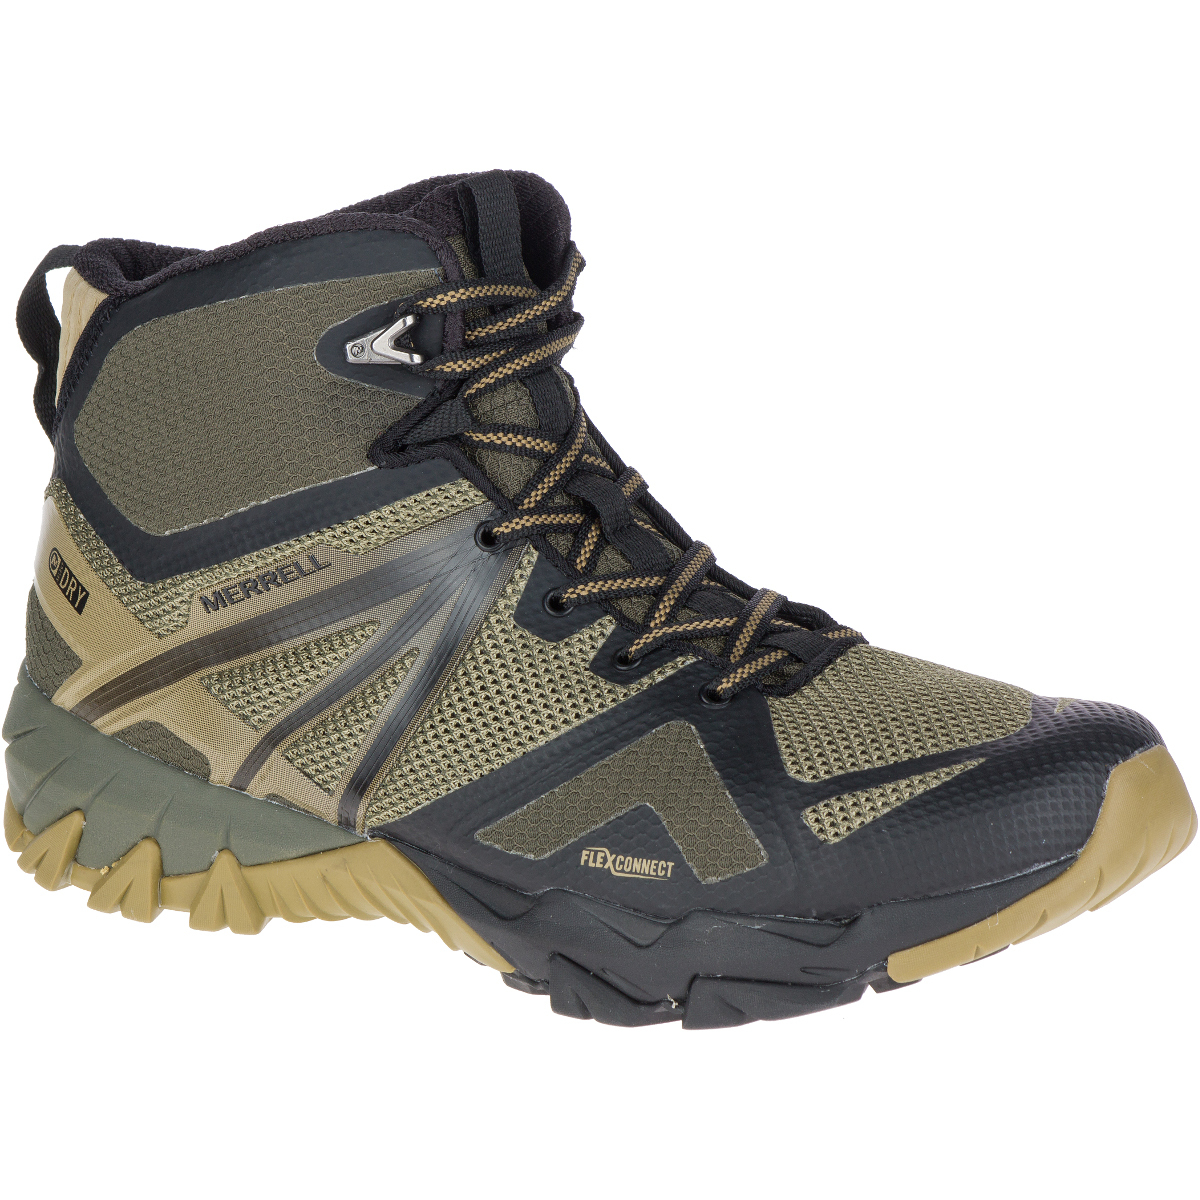 Merrell Men's Mqm Flex Mid Waterproof Hiking Boots - Green, 9